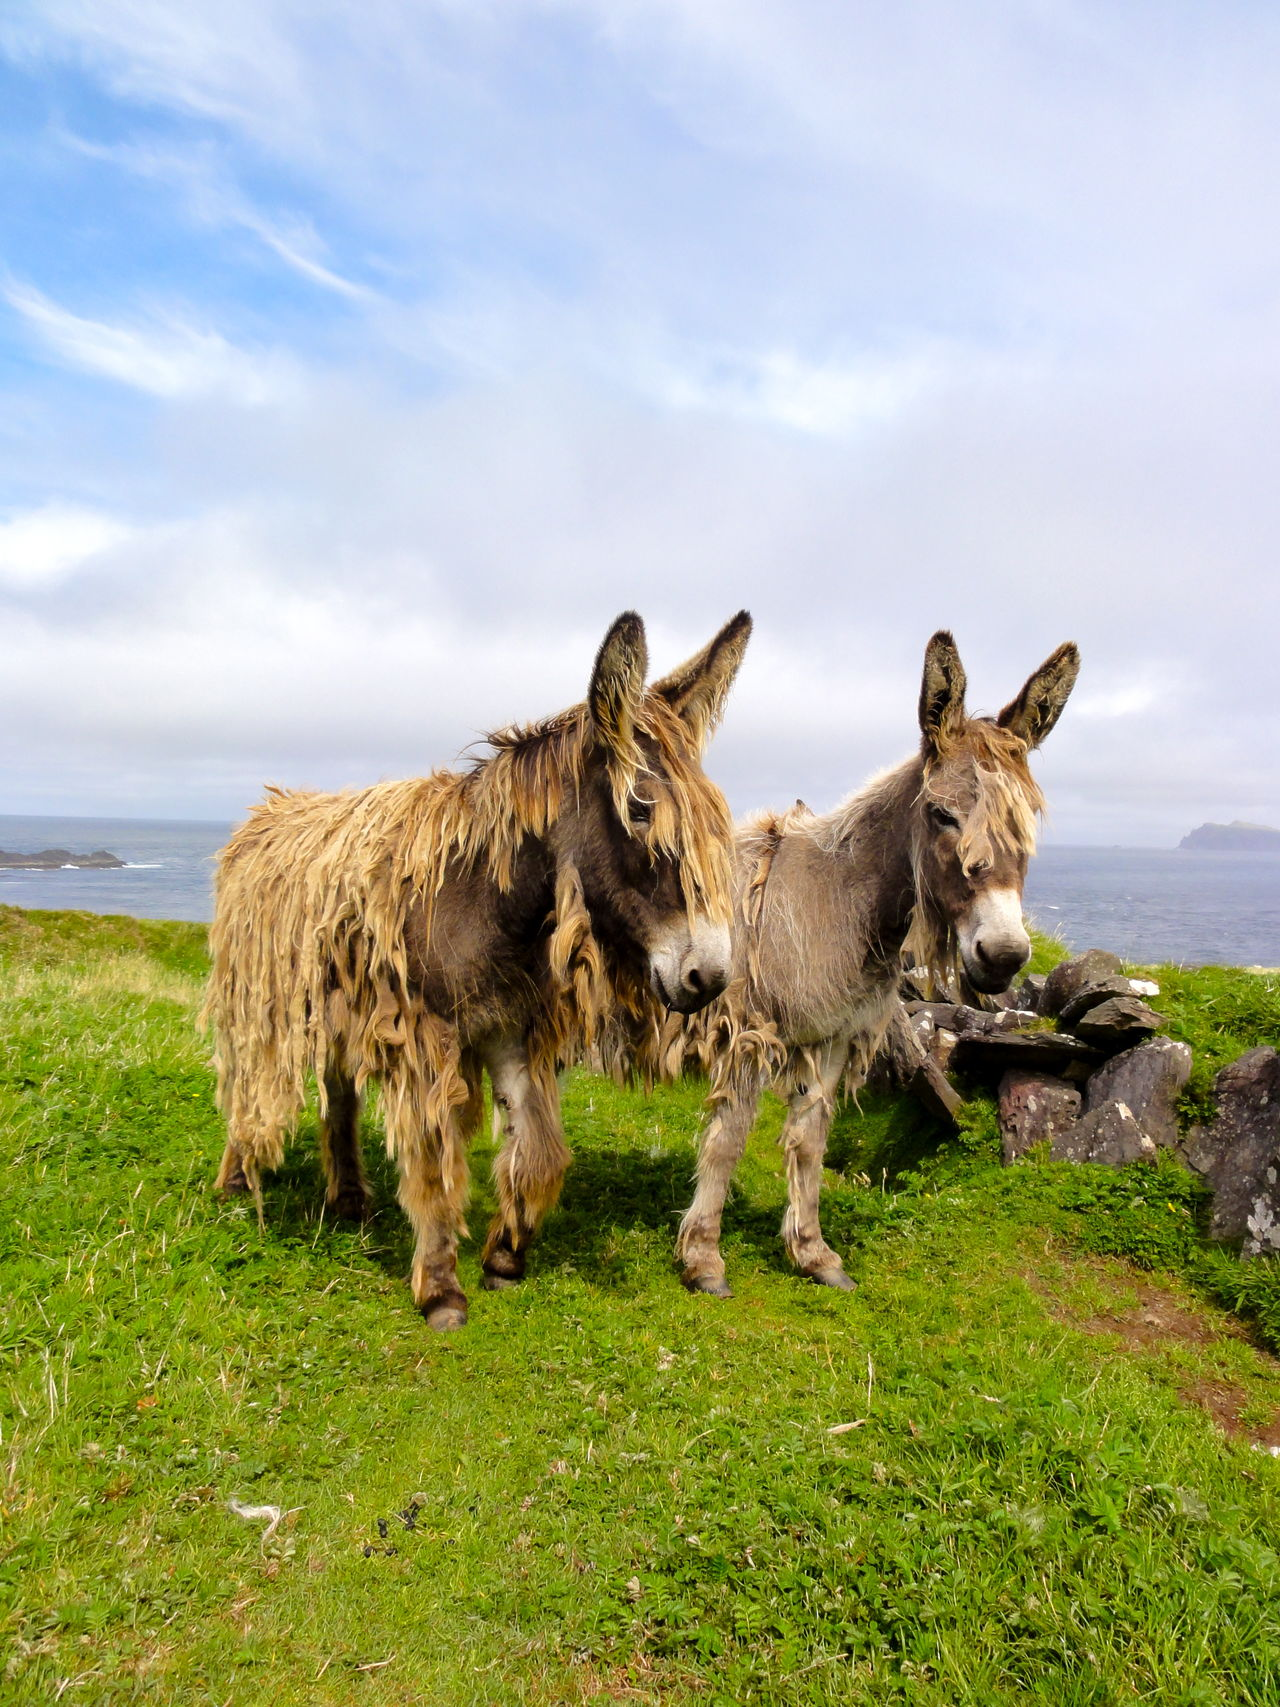 Animal Photography Animal Themes Animals Beautiful Nature Donkeys Green Harry Donkey Ireland Island Peasture Two Donkeys Standin